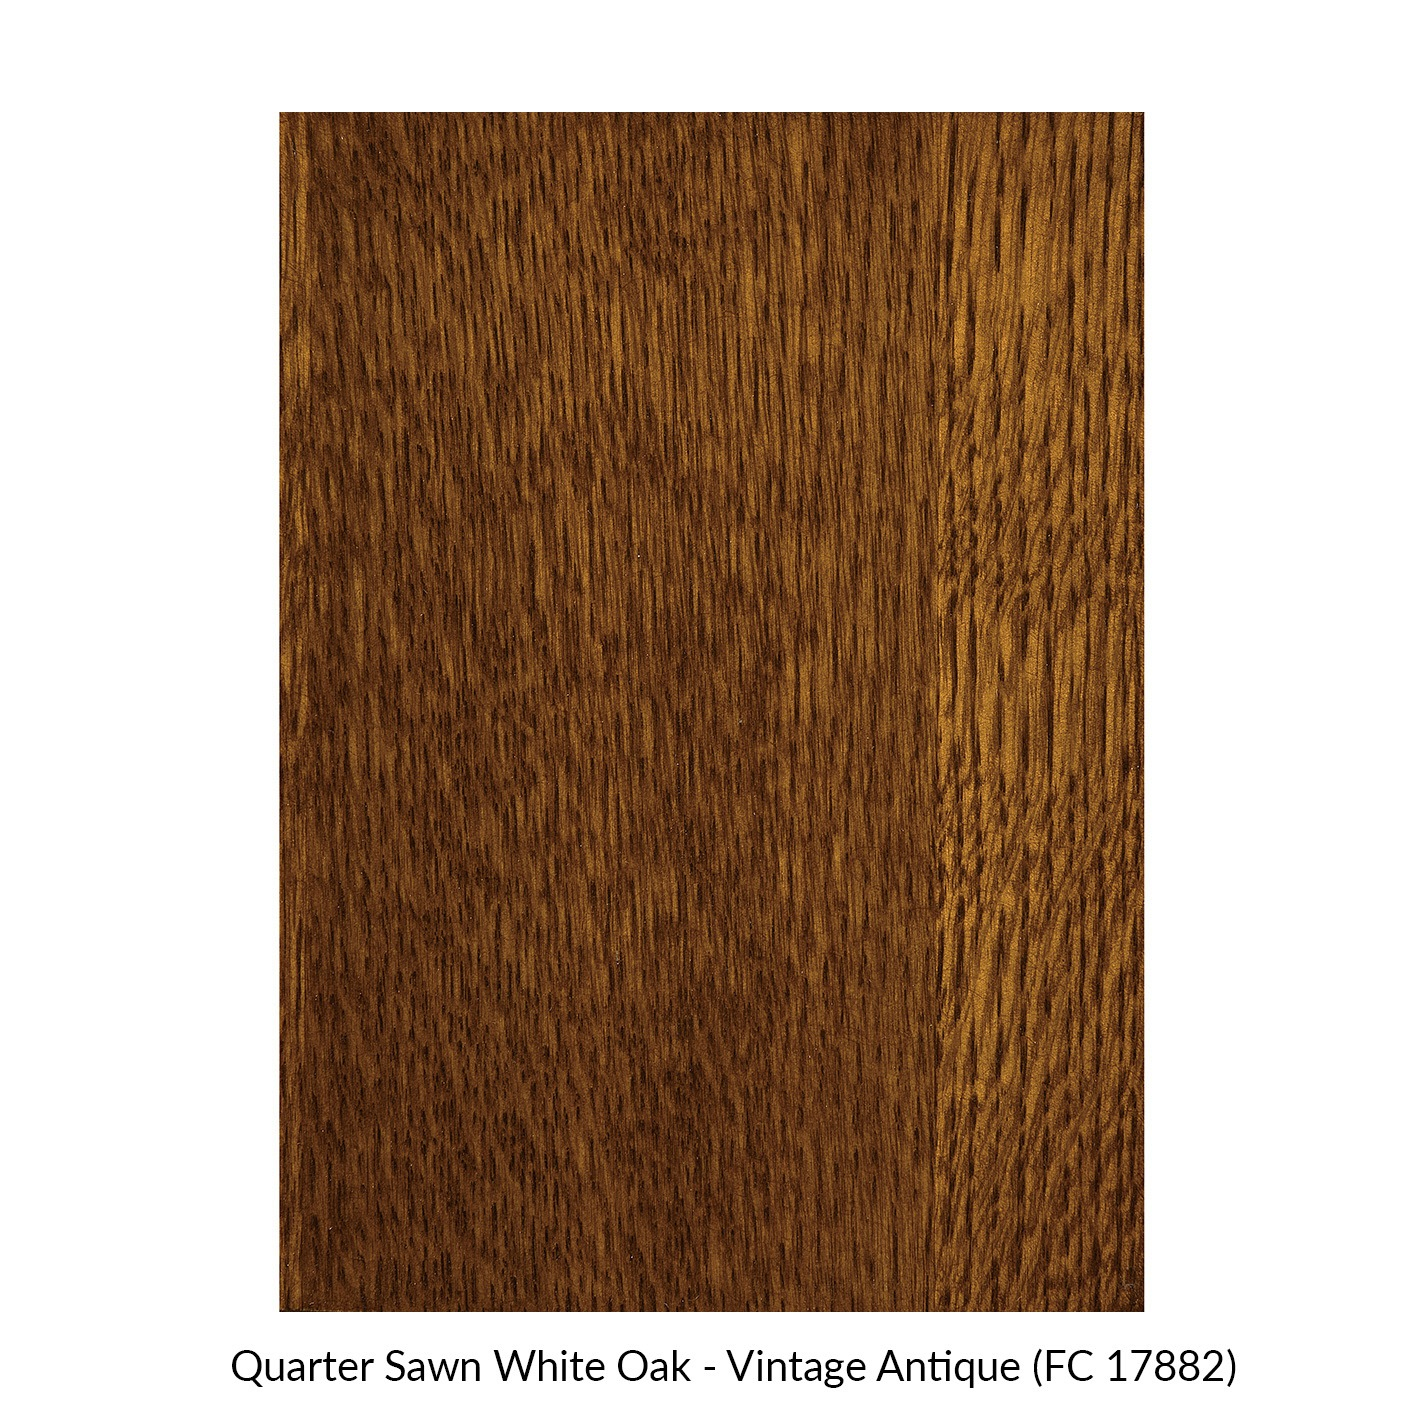 spectrum-quarter-sawn-white-oak-vintage-antique-fc-17882.jpg